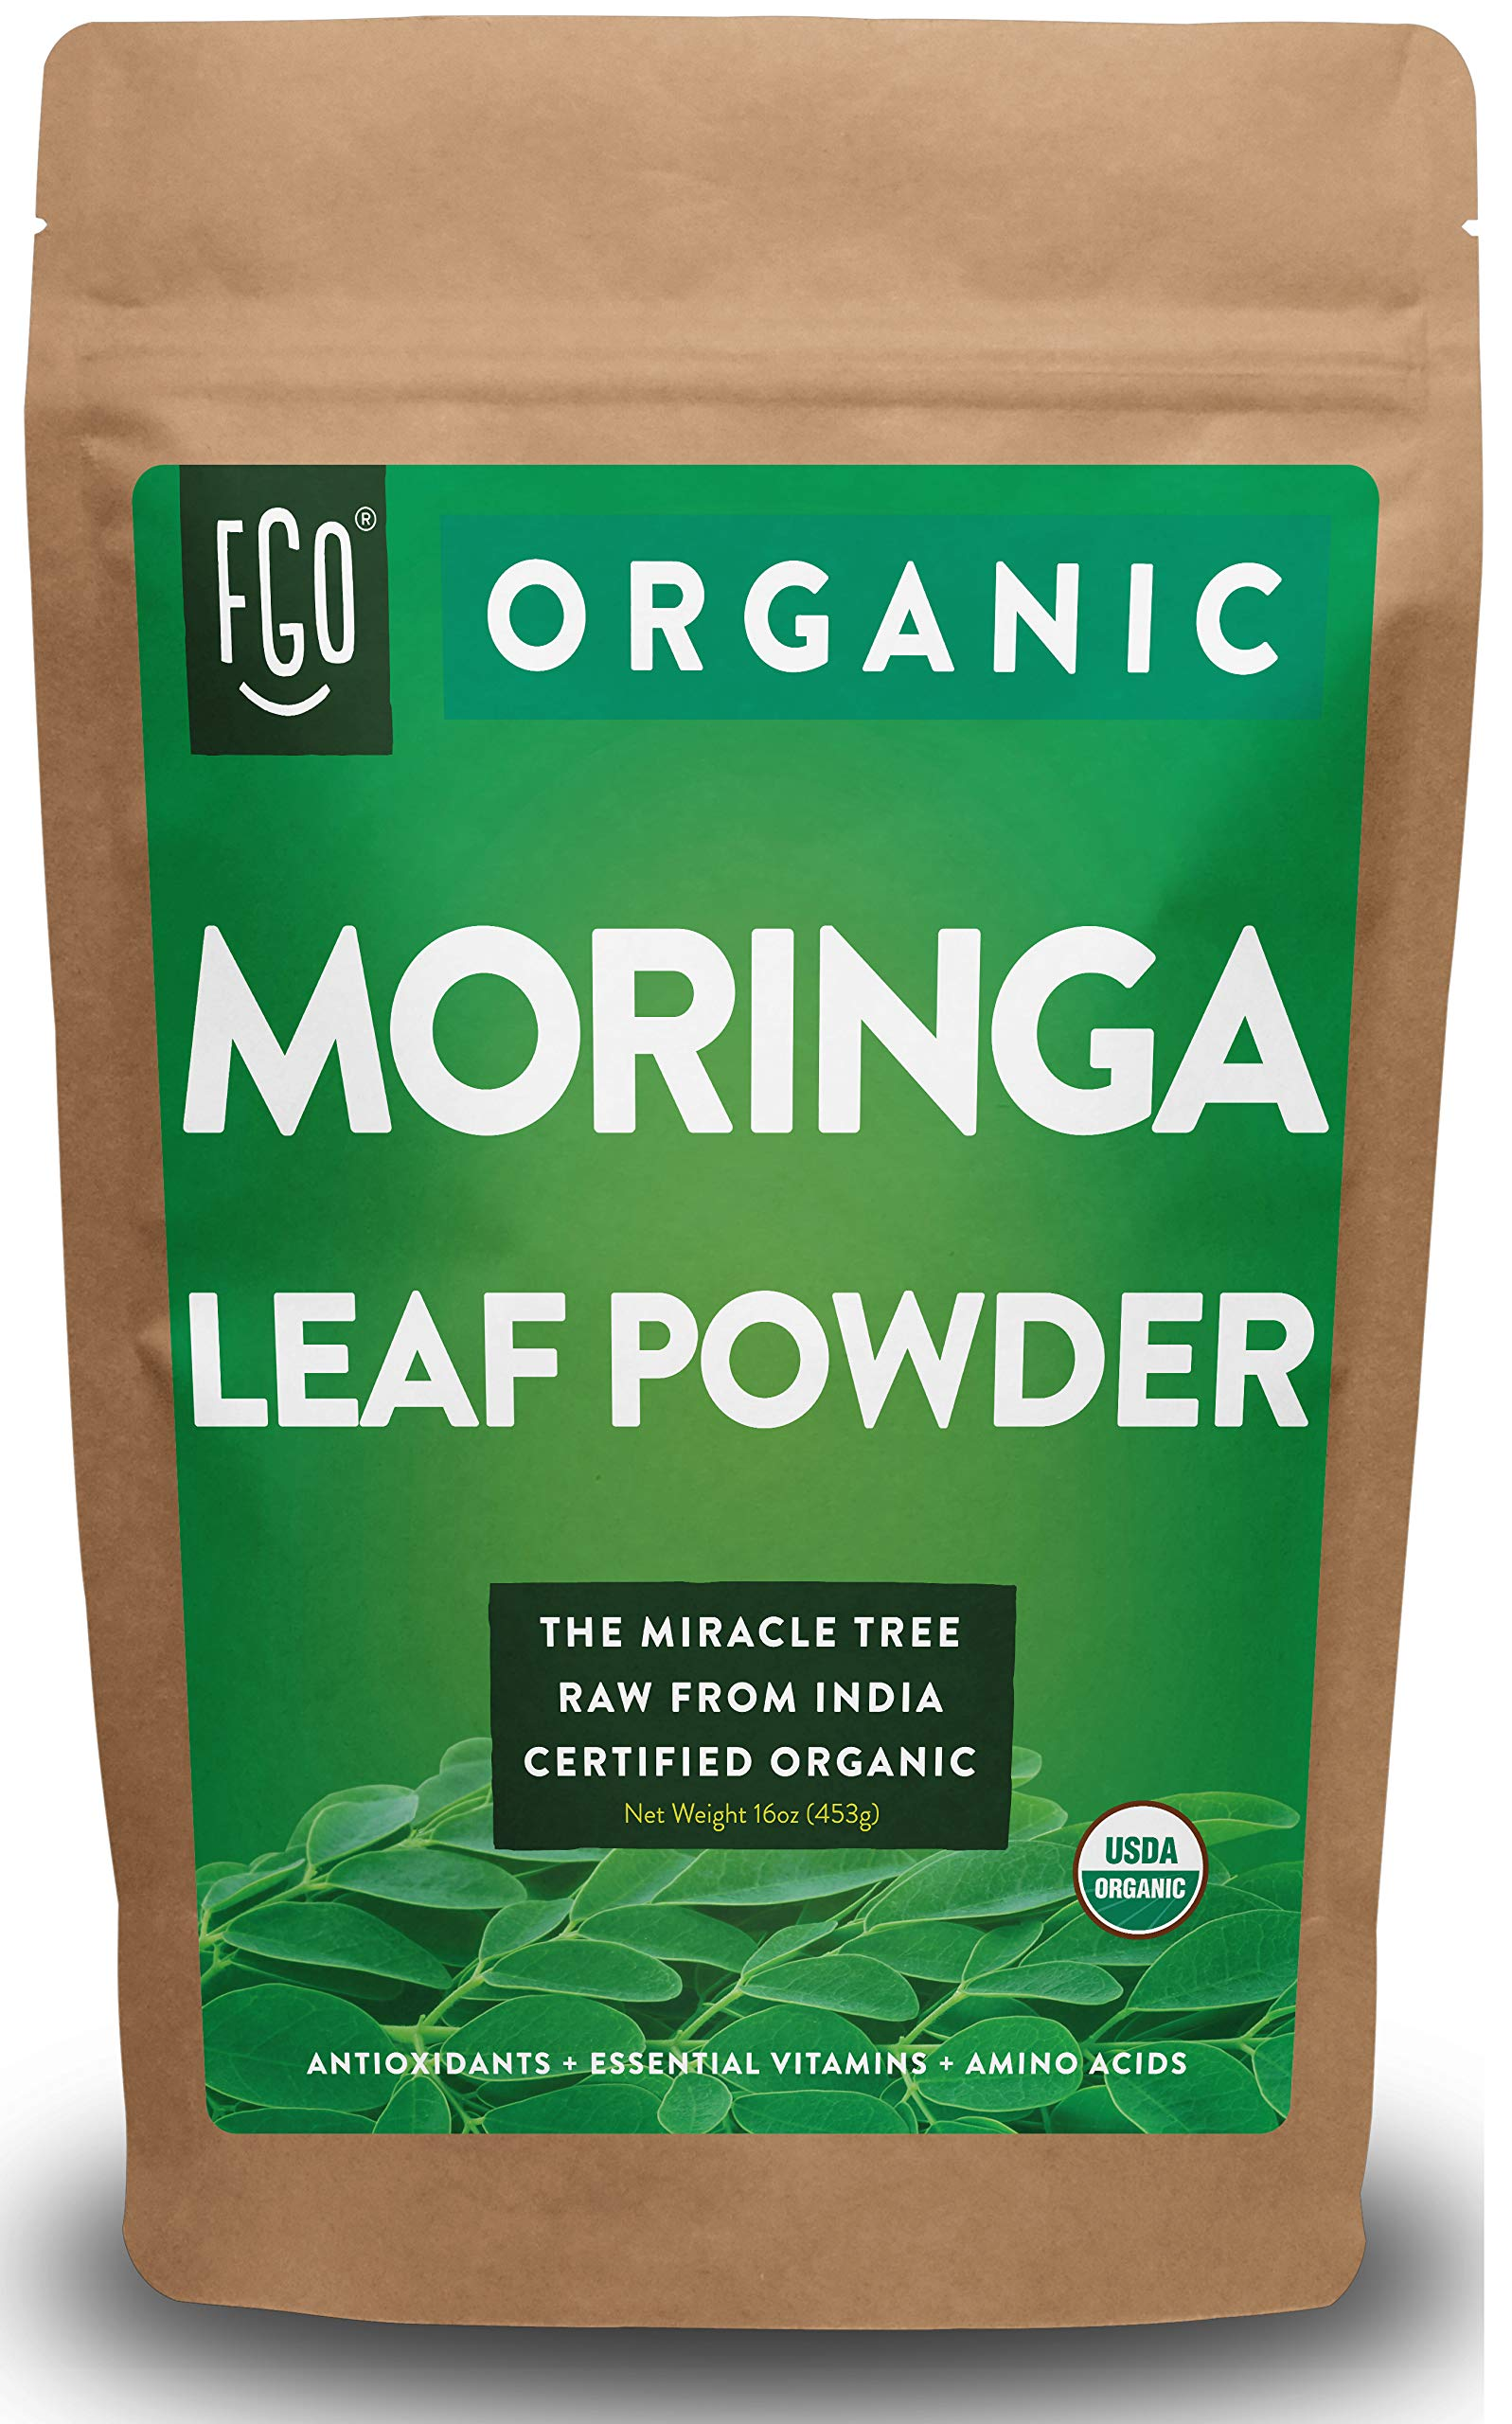 Organic Moringa Leaf Powder Resealable